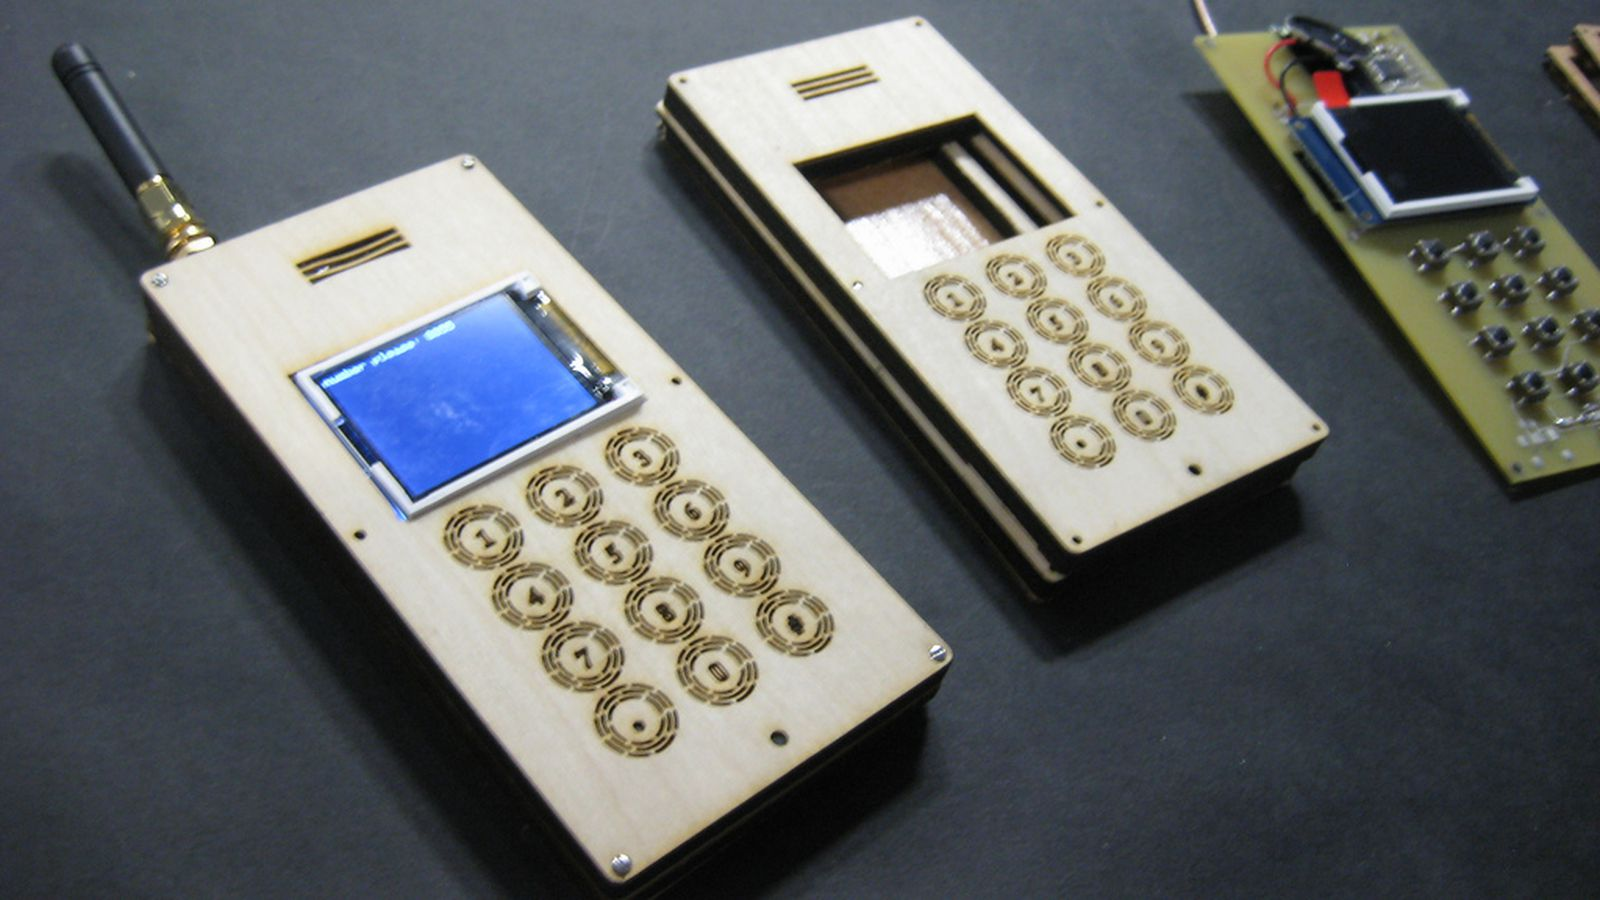 MIT student builds wooden DIY cellphone for $150